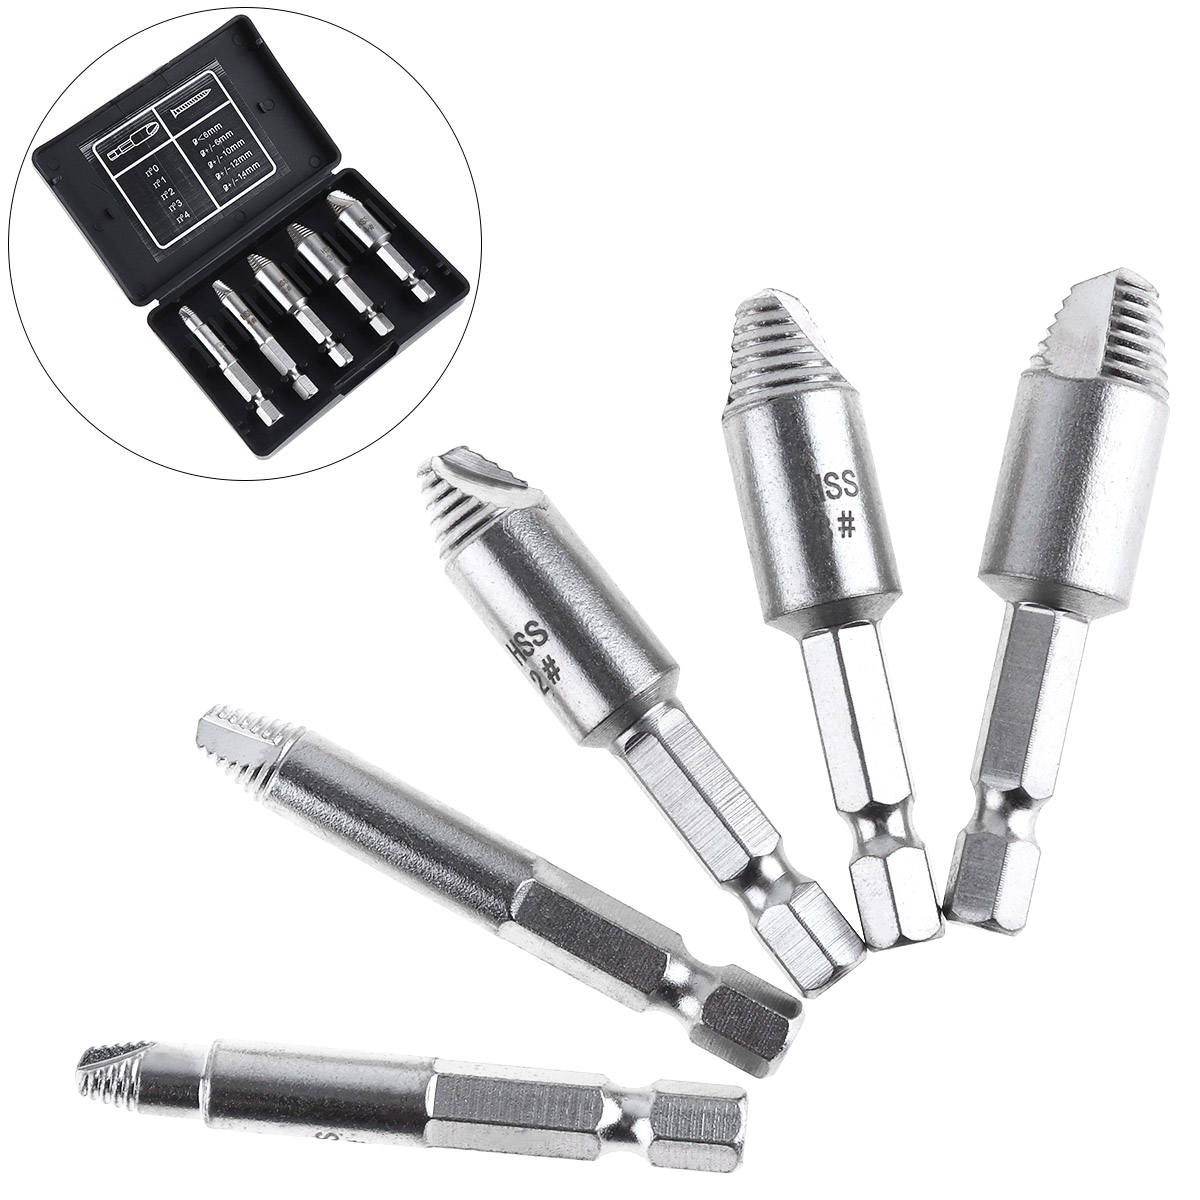 5pcs HSS Silver Strip Breakage Screw Extractor with Threaded Type Screw Tool for Home Screw Extractor screw extractor